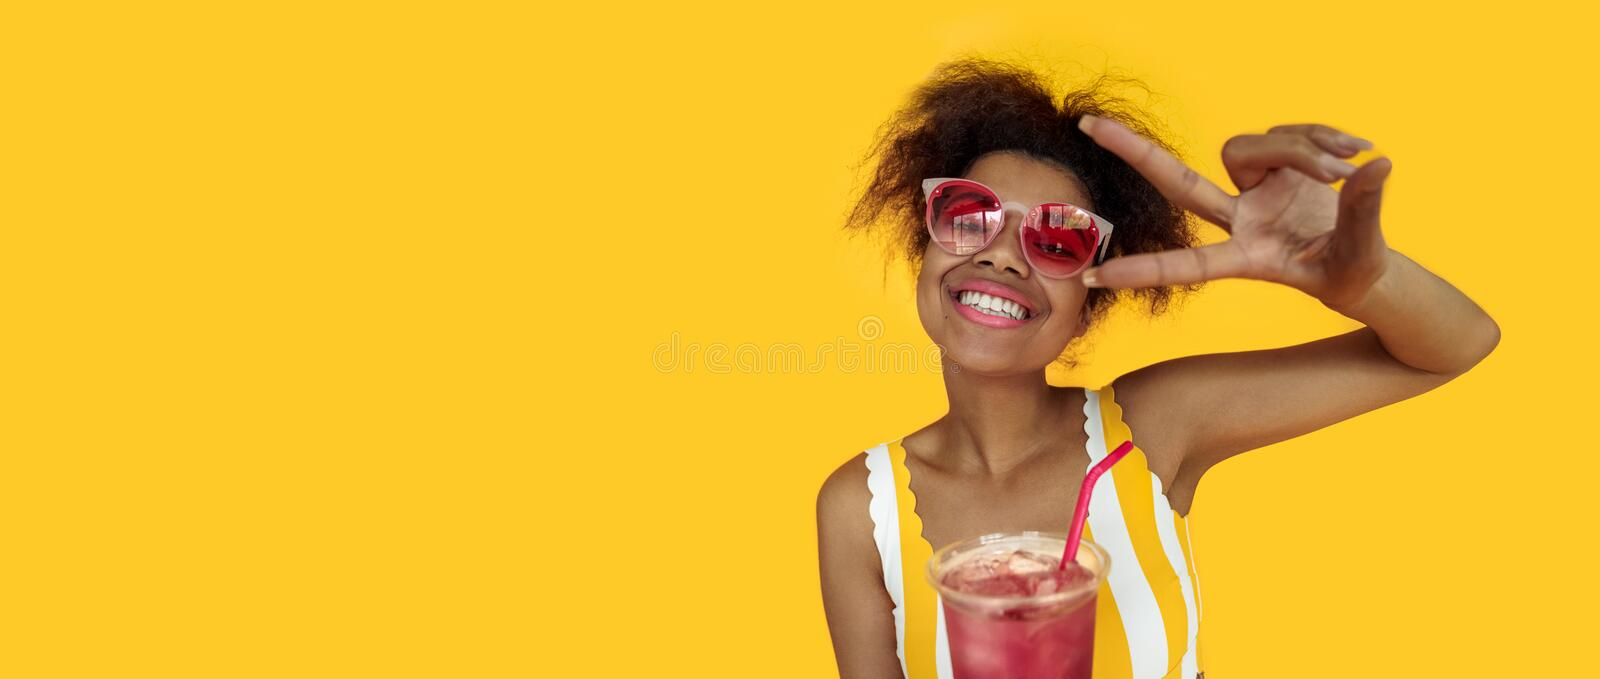 Happy young african woman hold drink wear glasses laugh look at camera. Cheerful black teen girl enjoy summer cocktail isolated on yellow studio background royalty free stock images